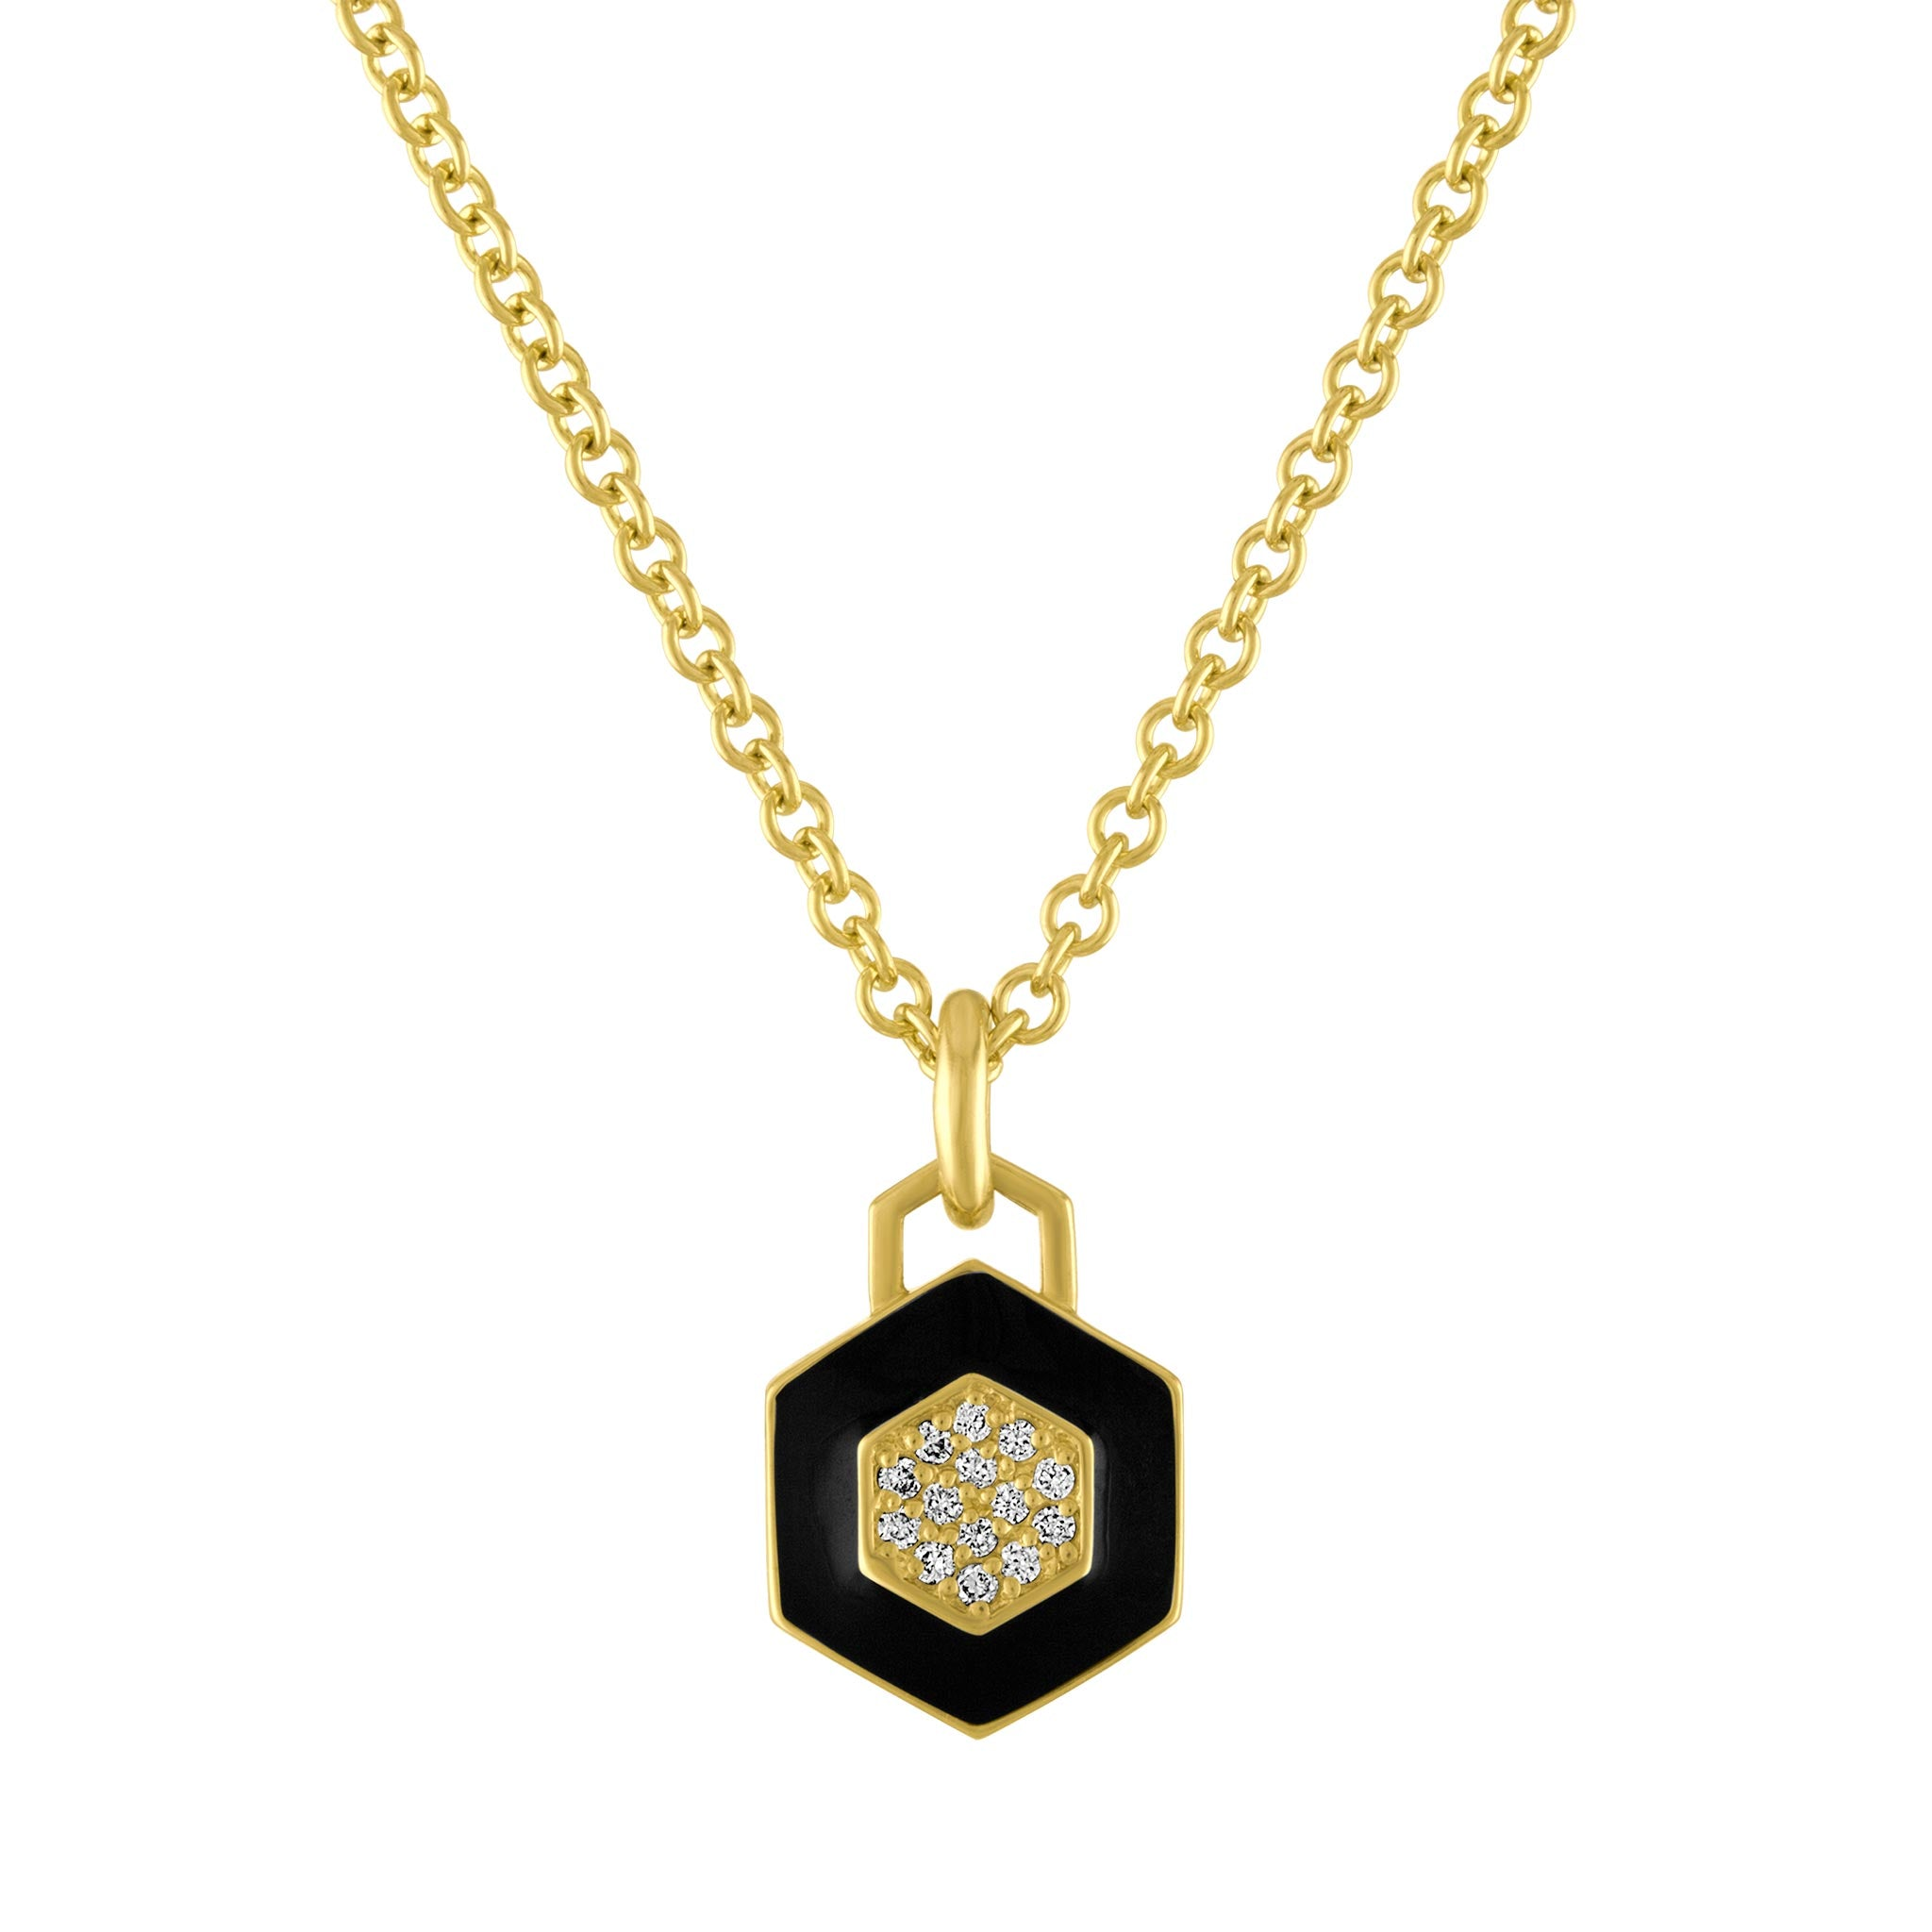 Amy Glaswand Fine Jewelry | Necklaces | Deco Pop Pendant Necklace